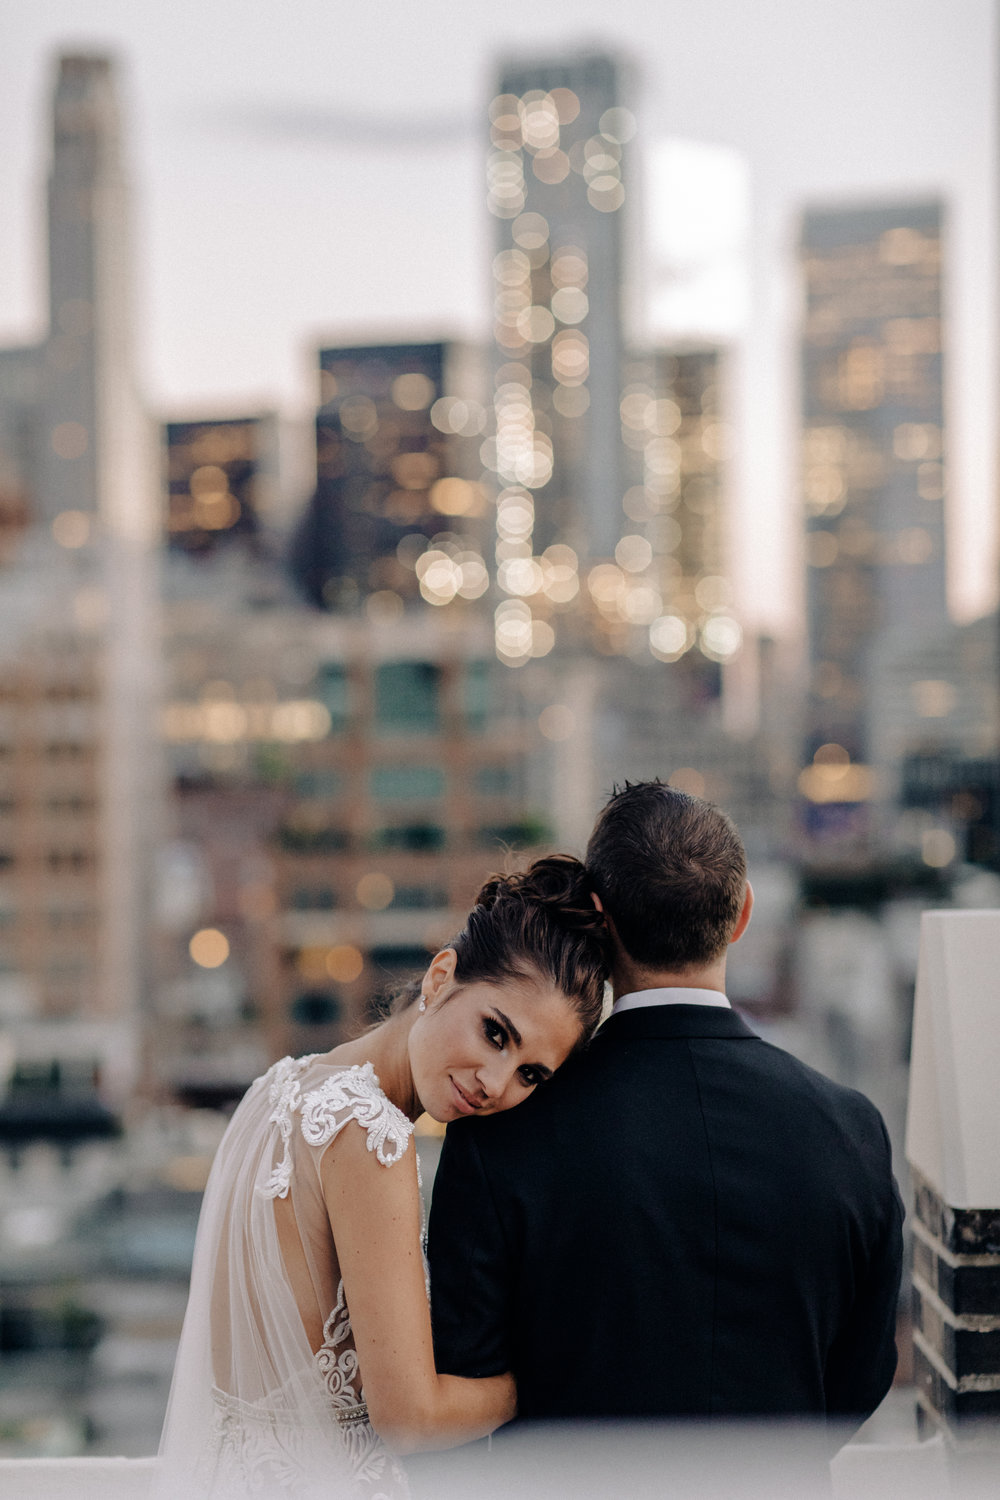 Hailley+Howard_Manhattan+Wedding_The+Tibecca+Rooftop-408.jpg